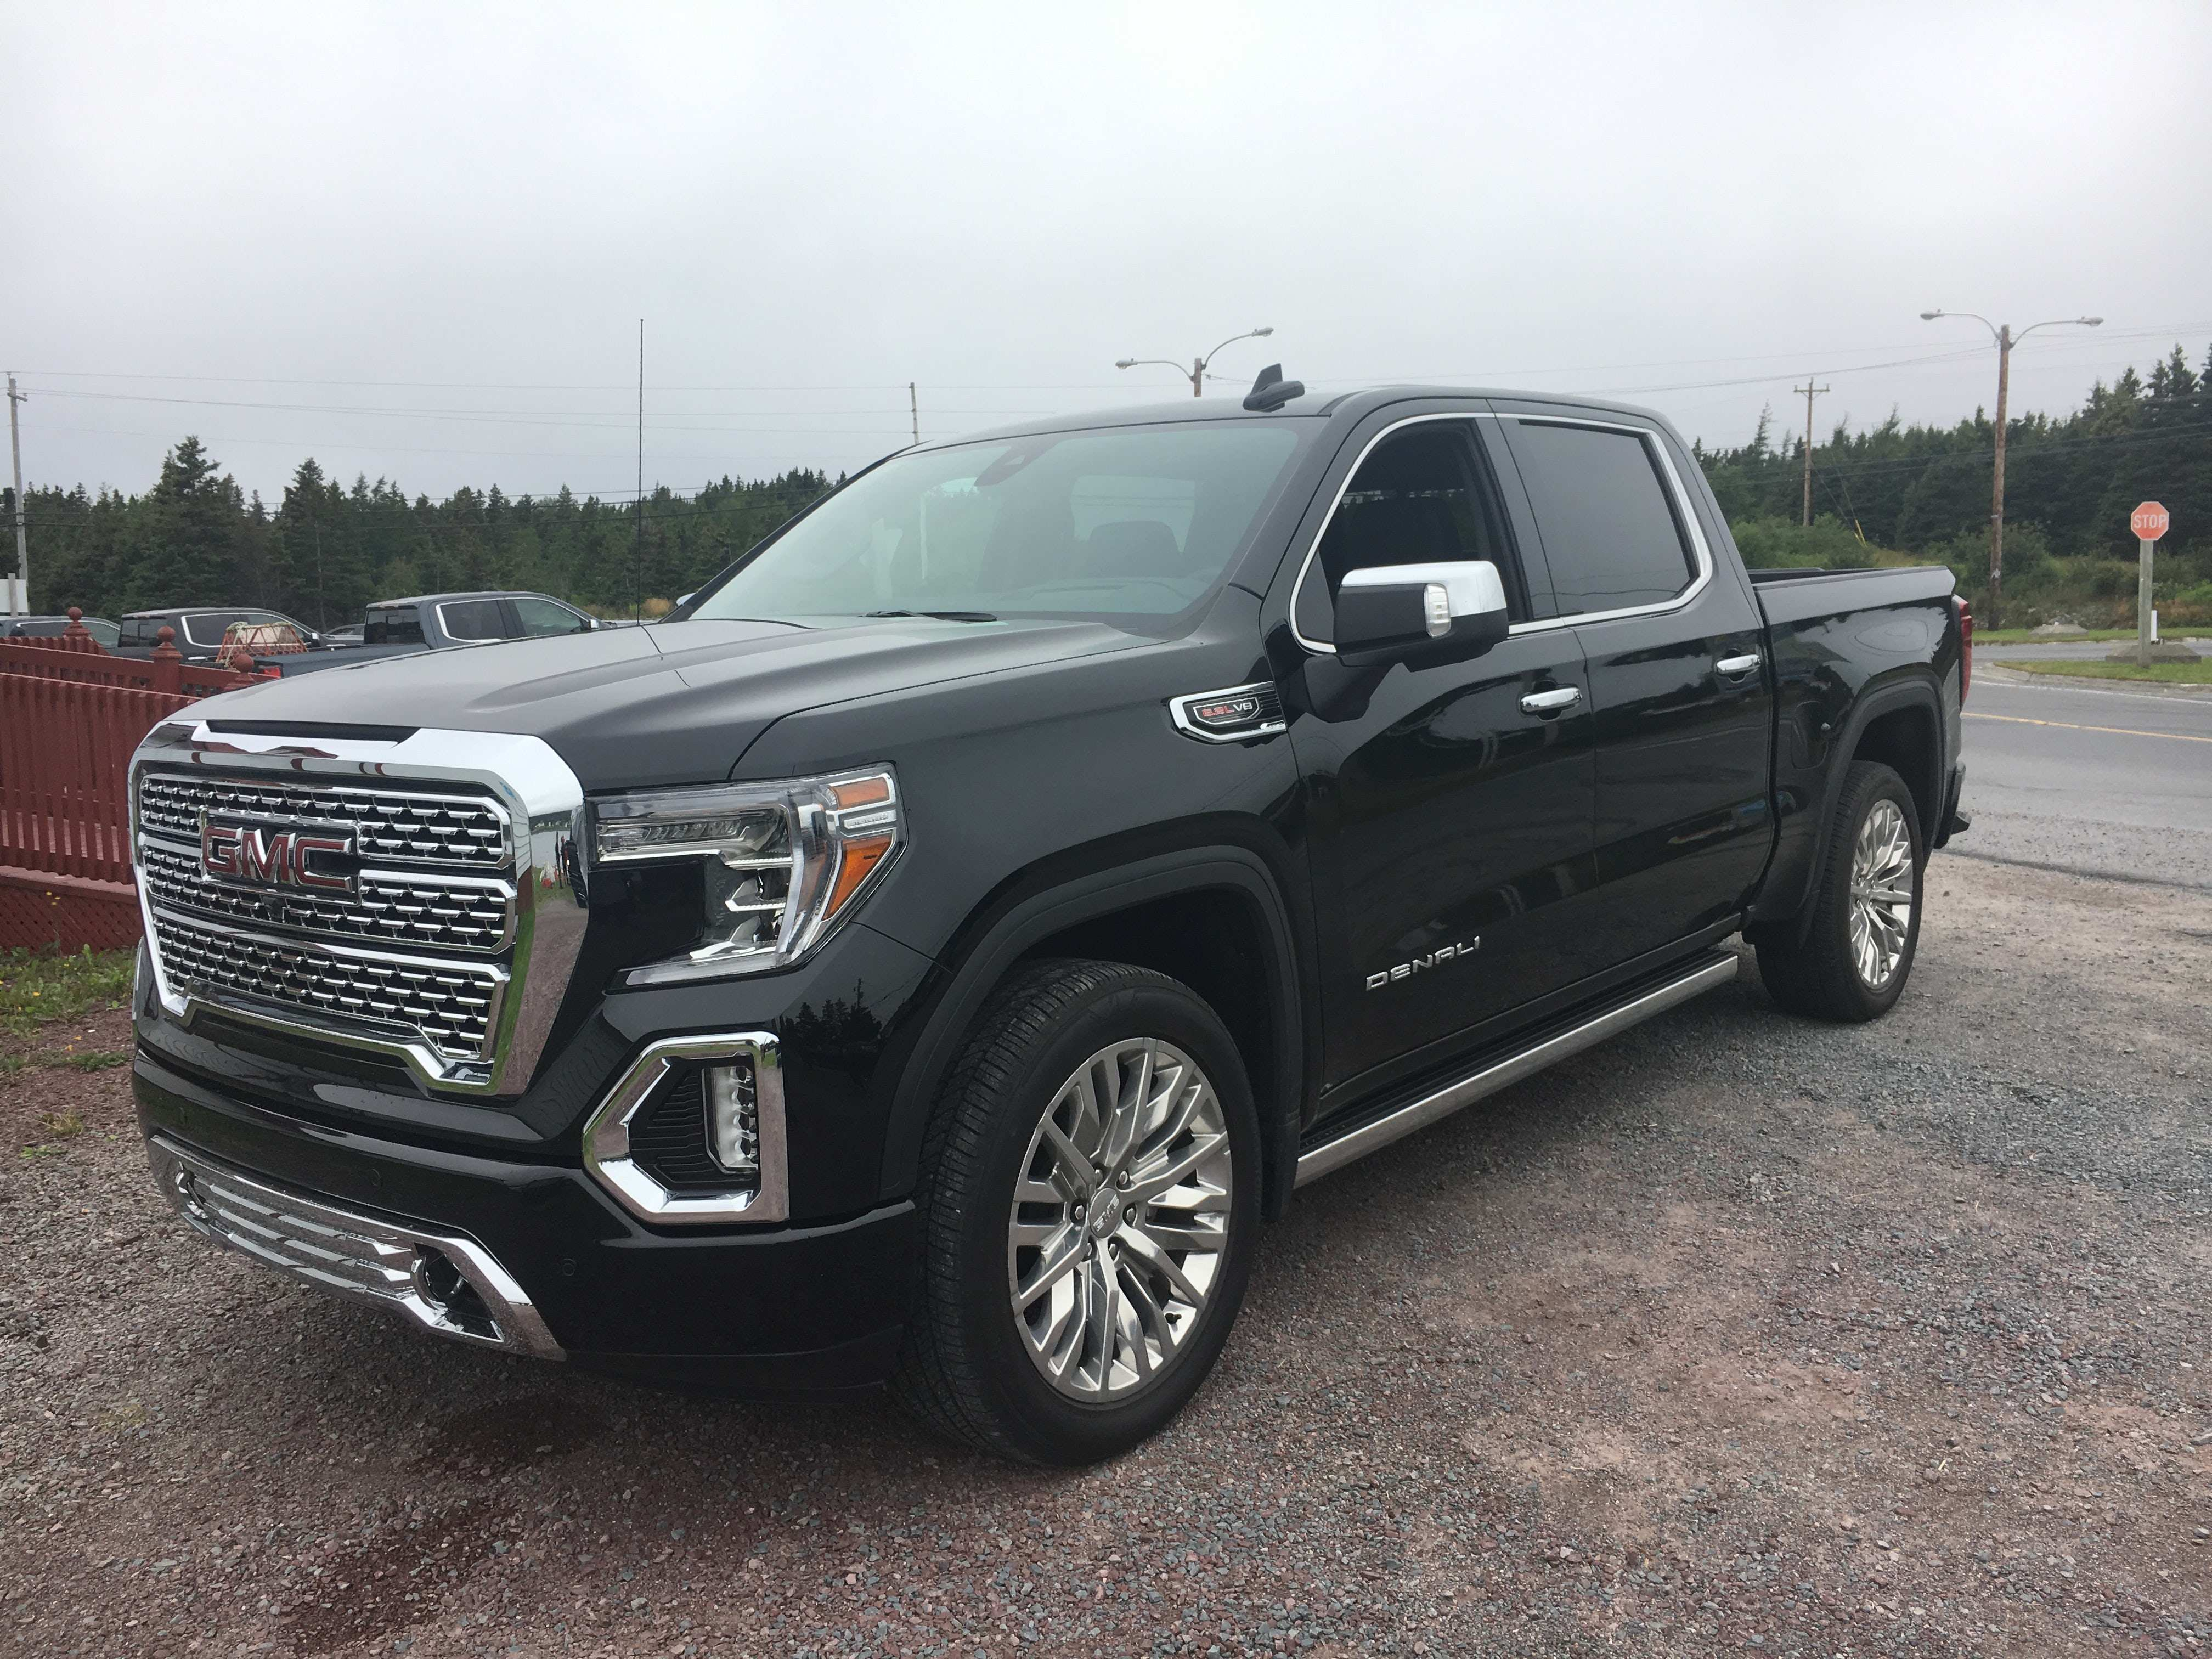 24 Great New 2019 Gmc Pickup Truck Review Specs And Release Date Review by New 2019 Gmc Pickup Truck Review Specs And Release Date